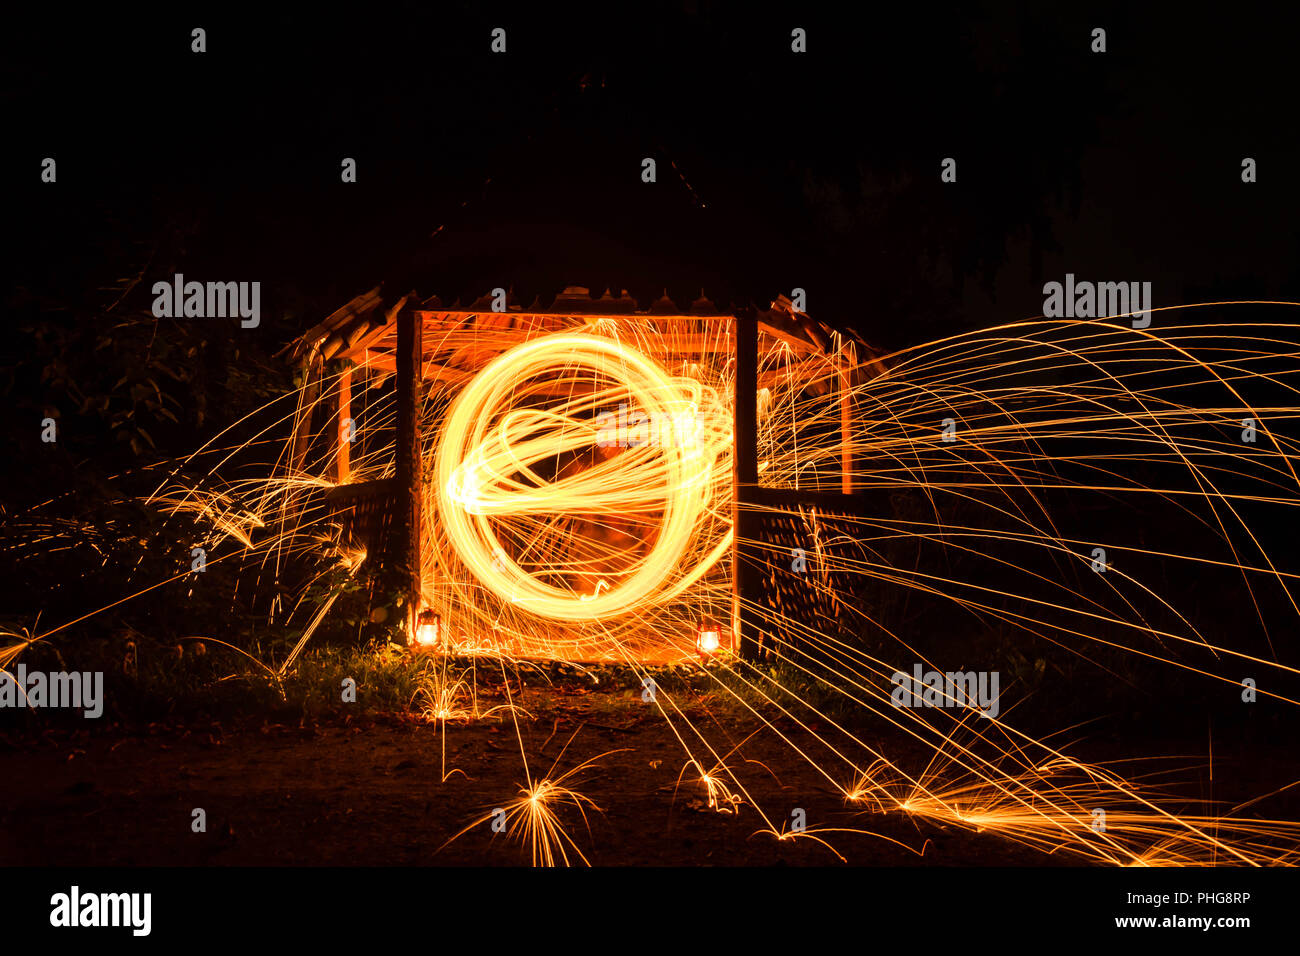 Long exposure image of steel wool photography, light painting in wooden house. Stock Photo